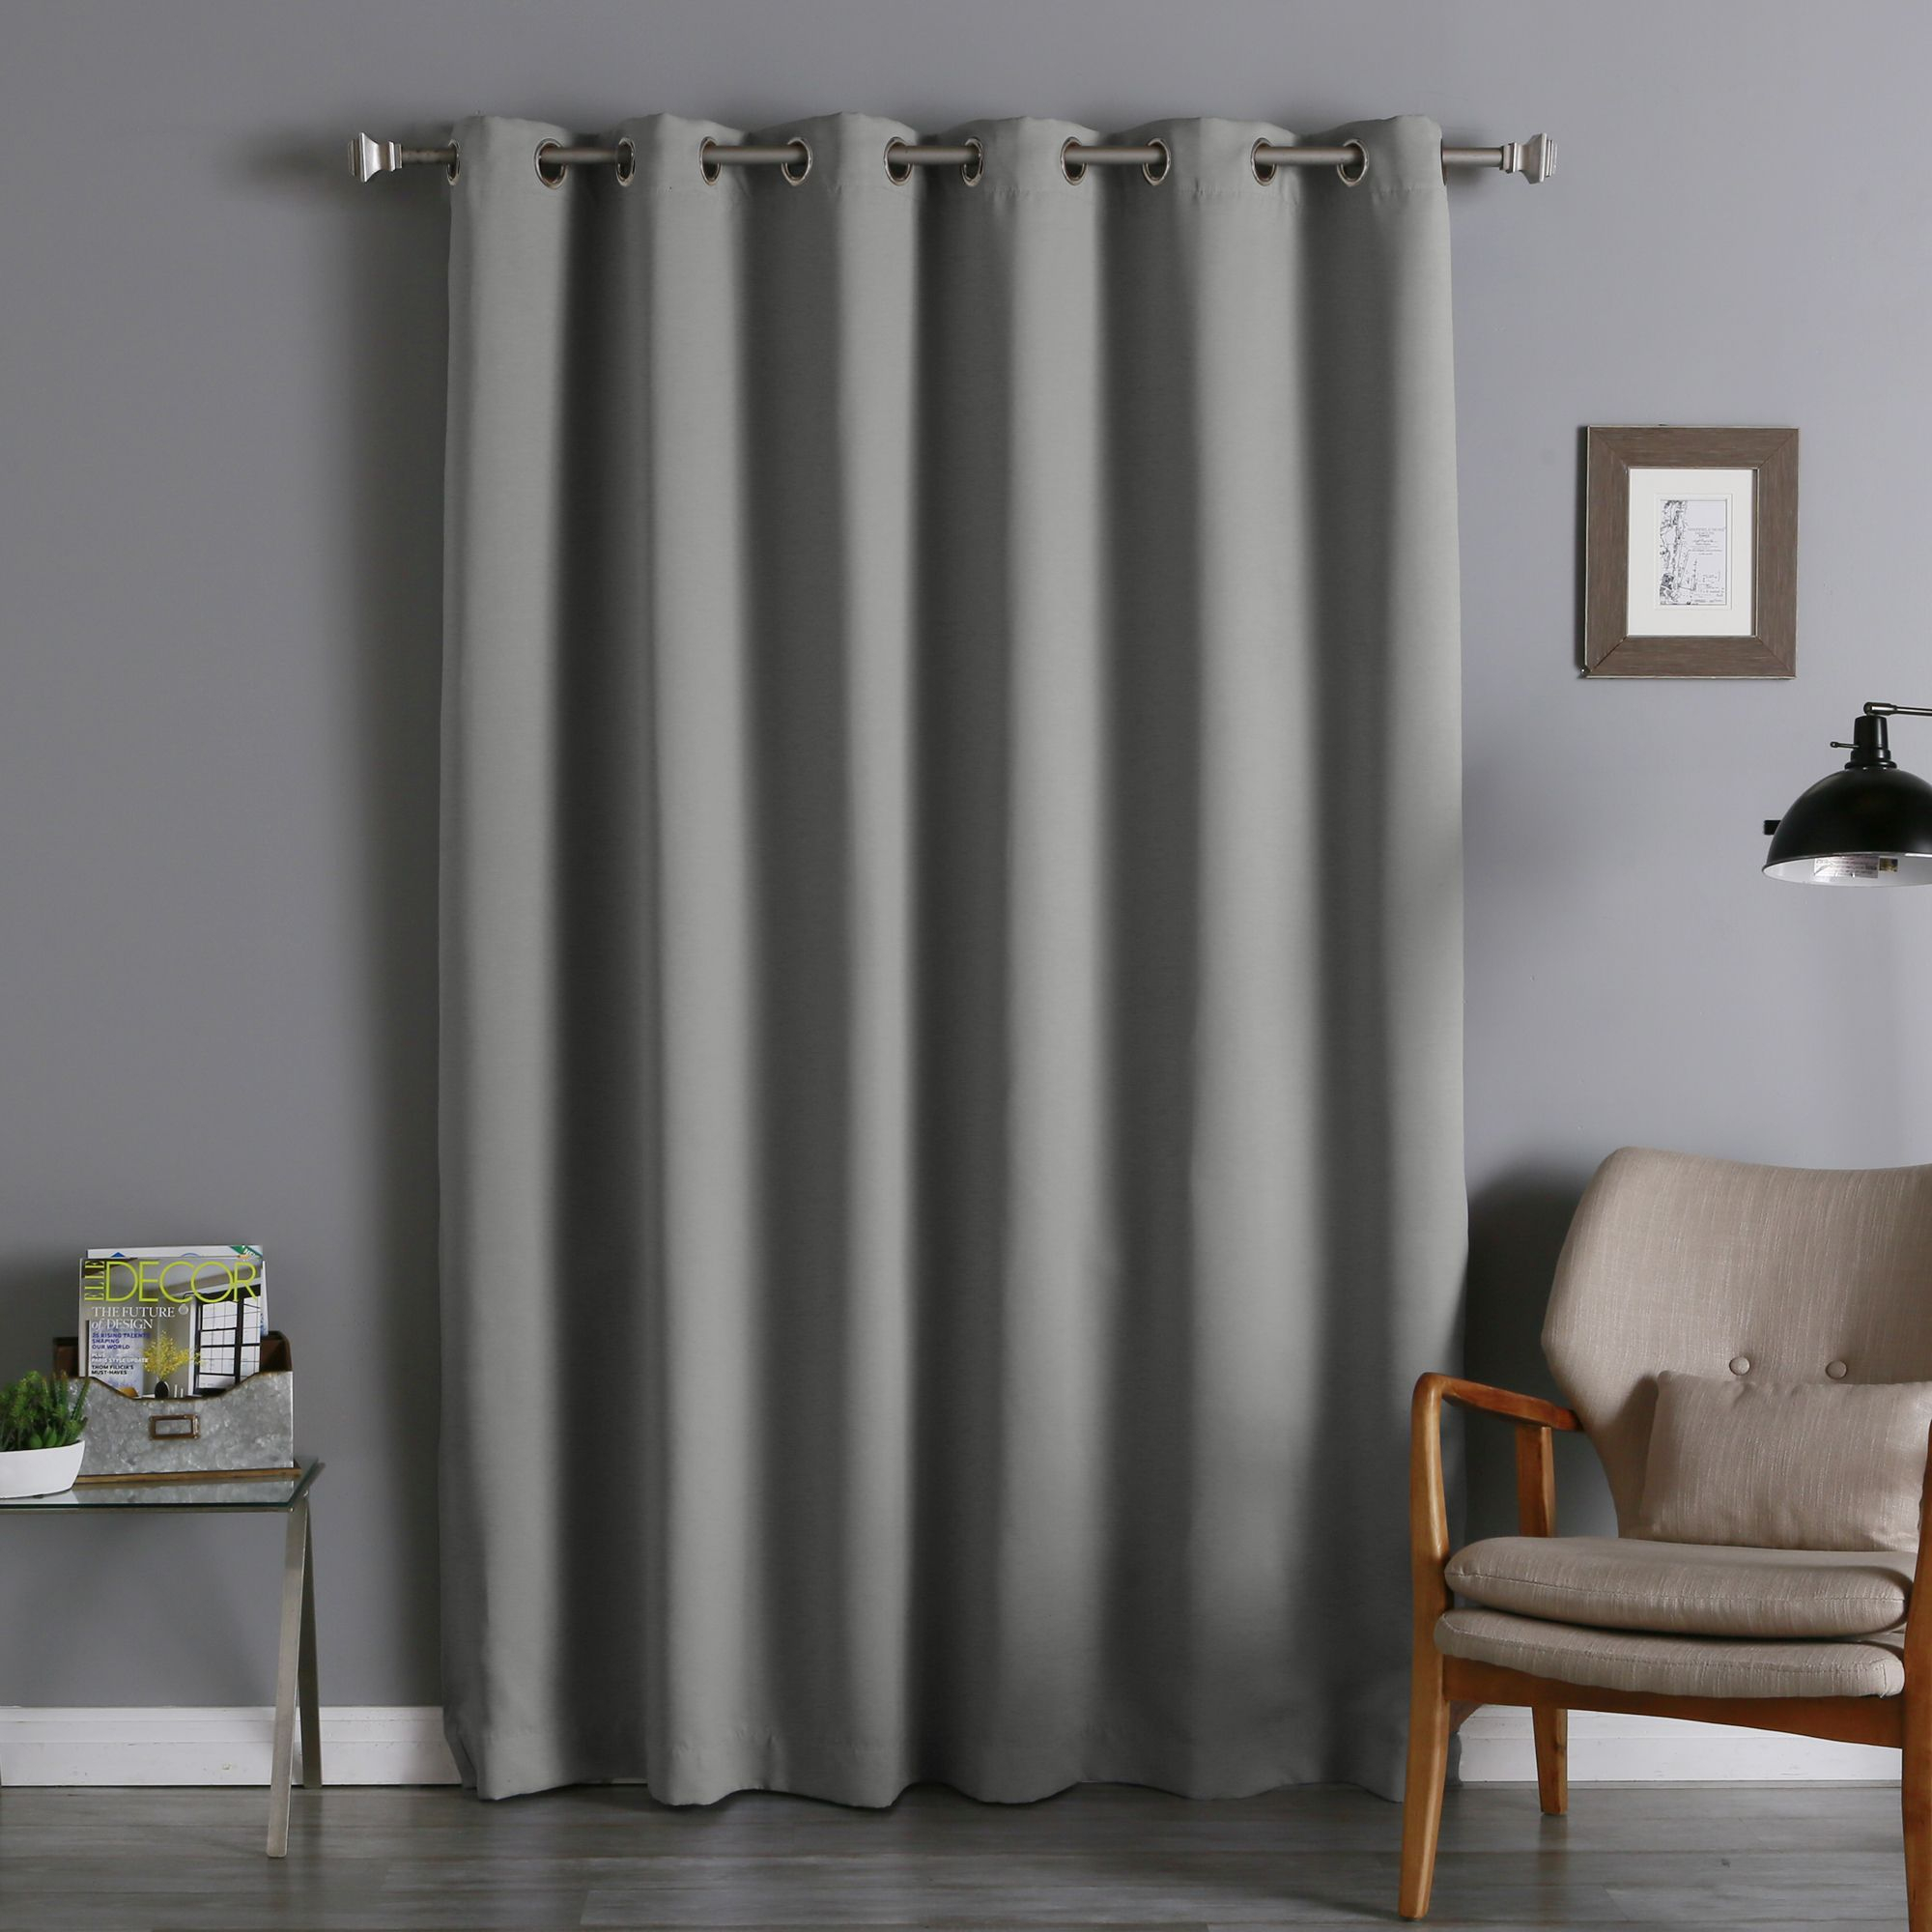 Aurora Home Silver Grommet Top Wide Width Thermal Insulated Throughout Silvertone Grommet Thermal Insulated Blackout Curtain Panel Pairs (View 4 of 30)